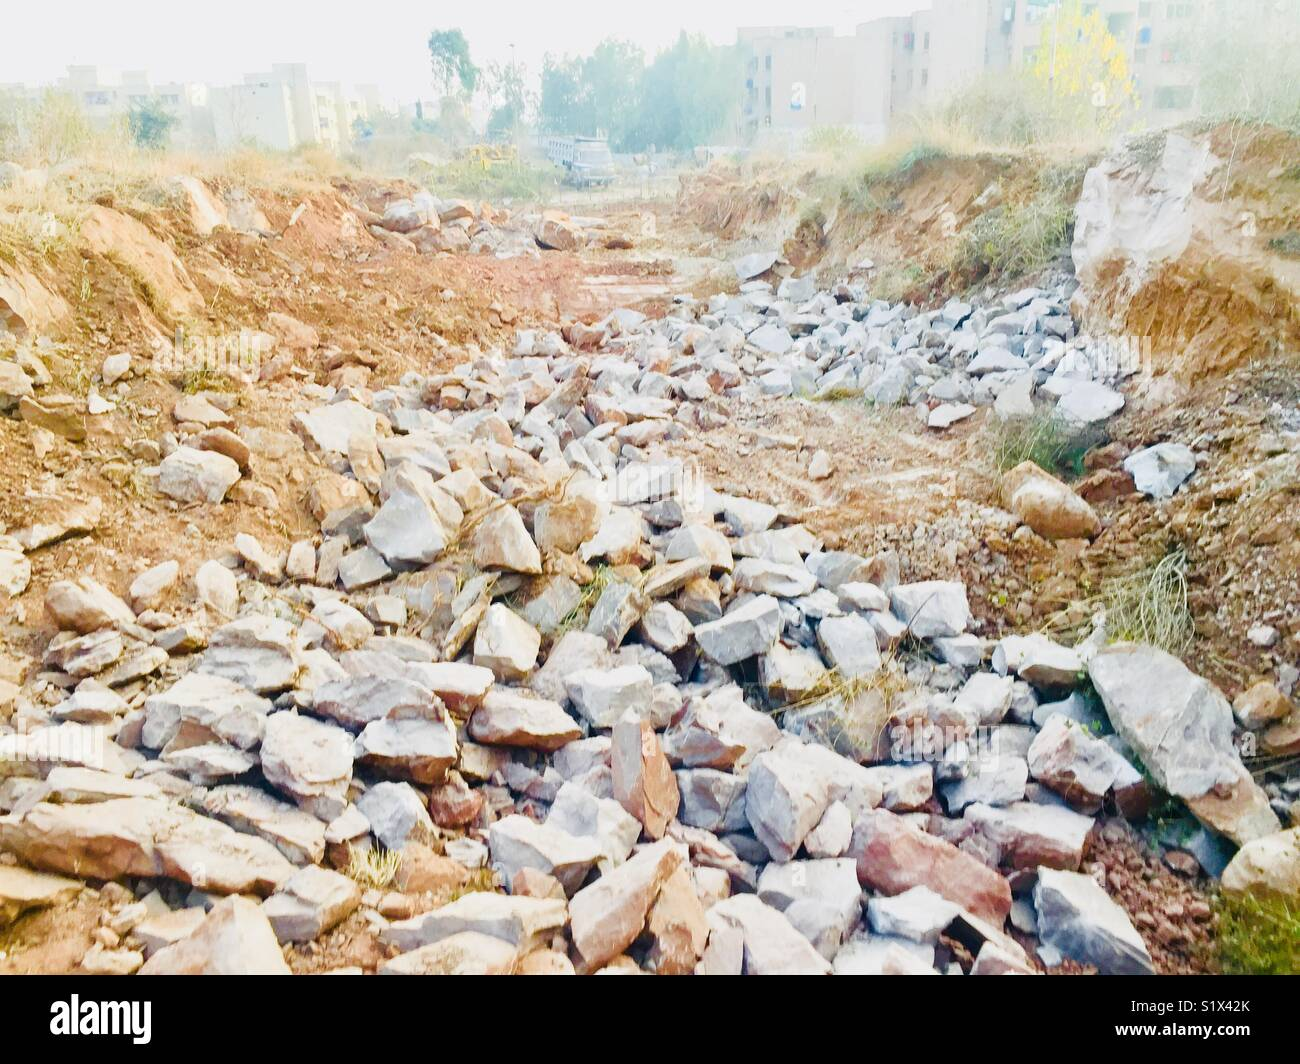 Construction work in process in beautiful city Islamabad Pakistan - Stock Image